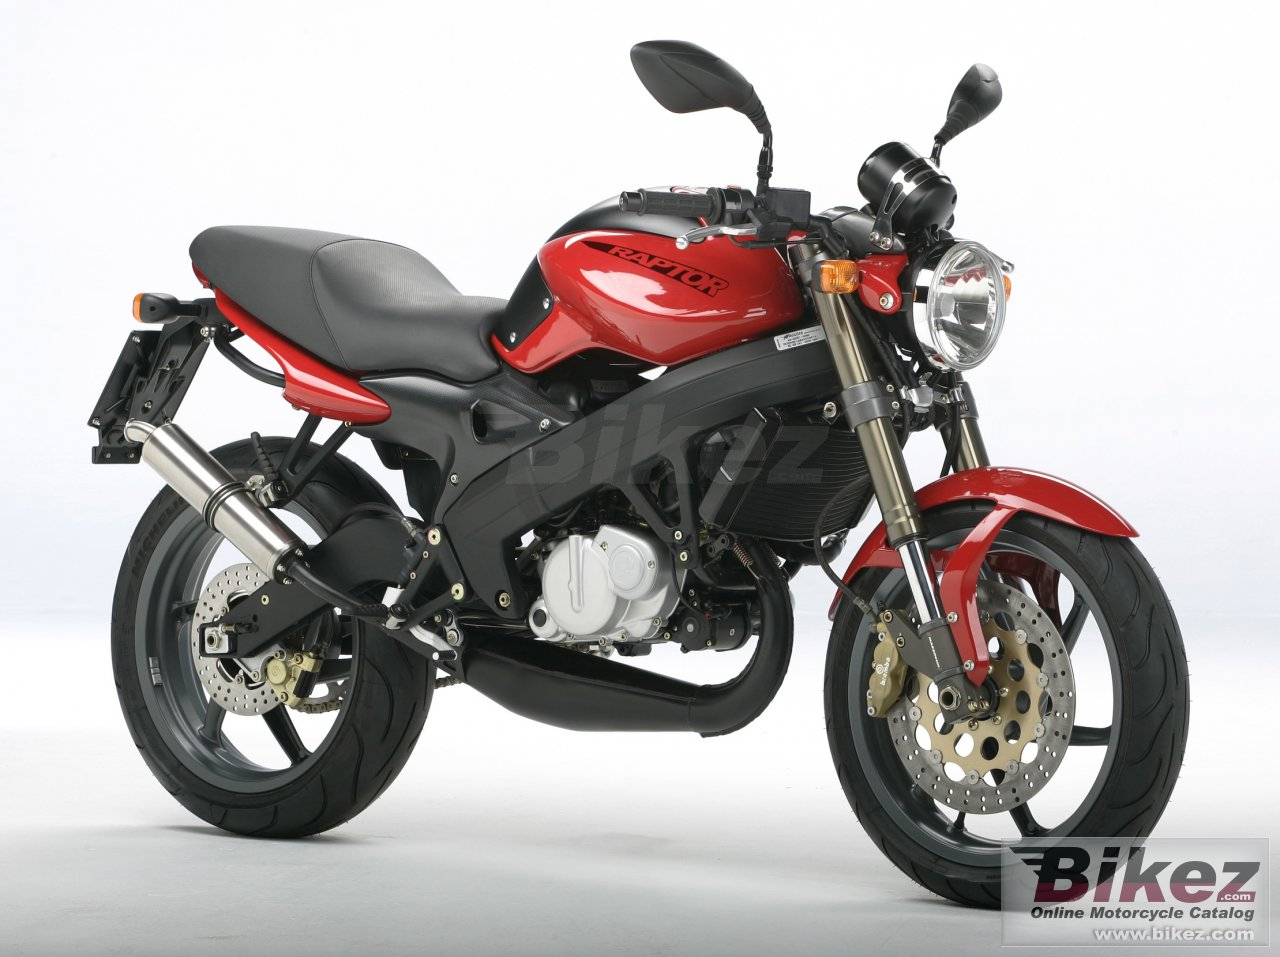 Big Cagiva raptor 125 picture and wallpaper from Bikez.com